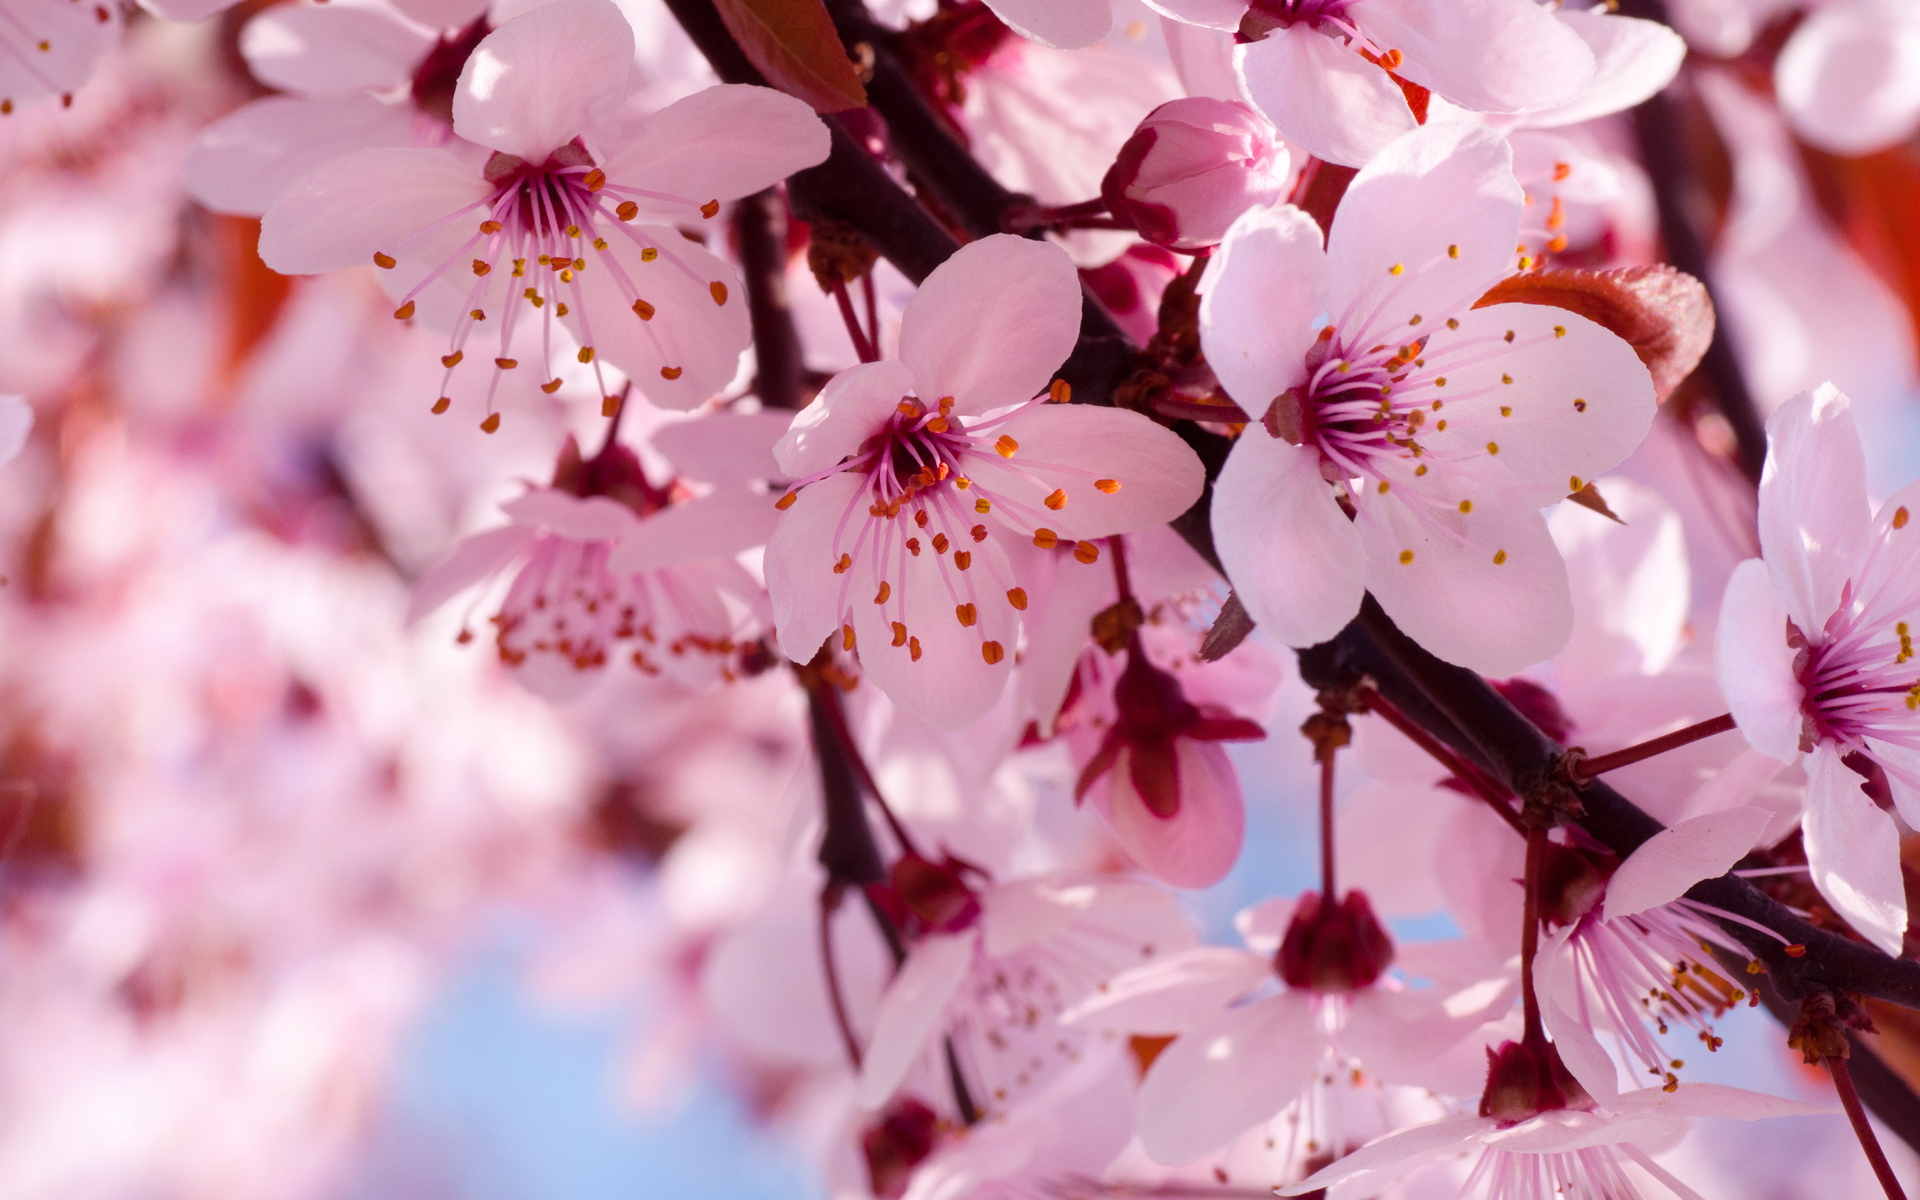 cherry flowers branch spring blossom blossoms wallpaper background